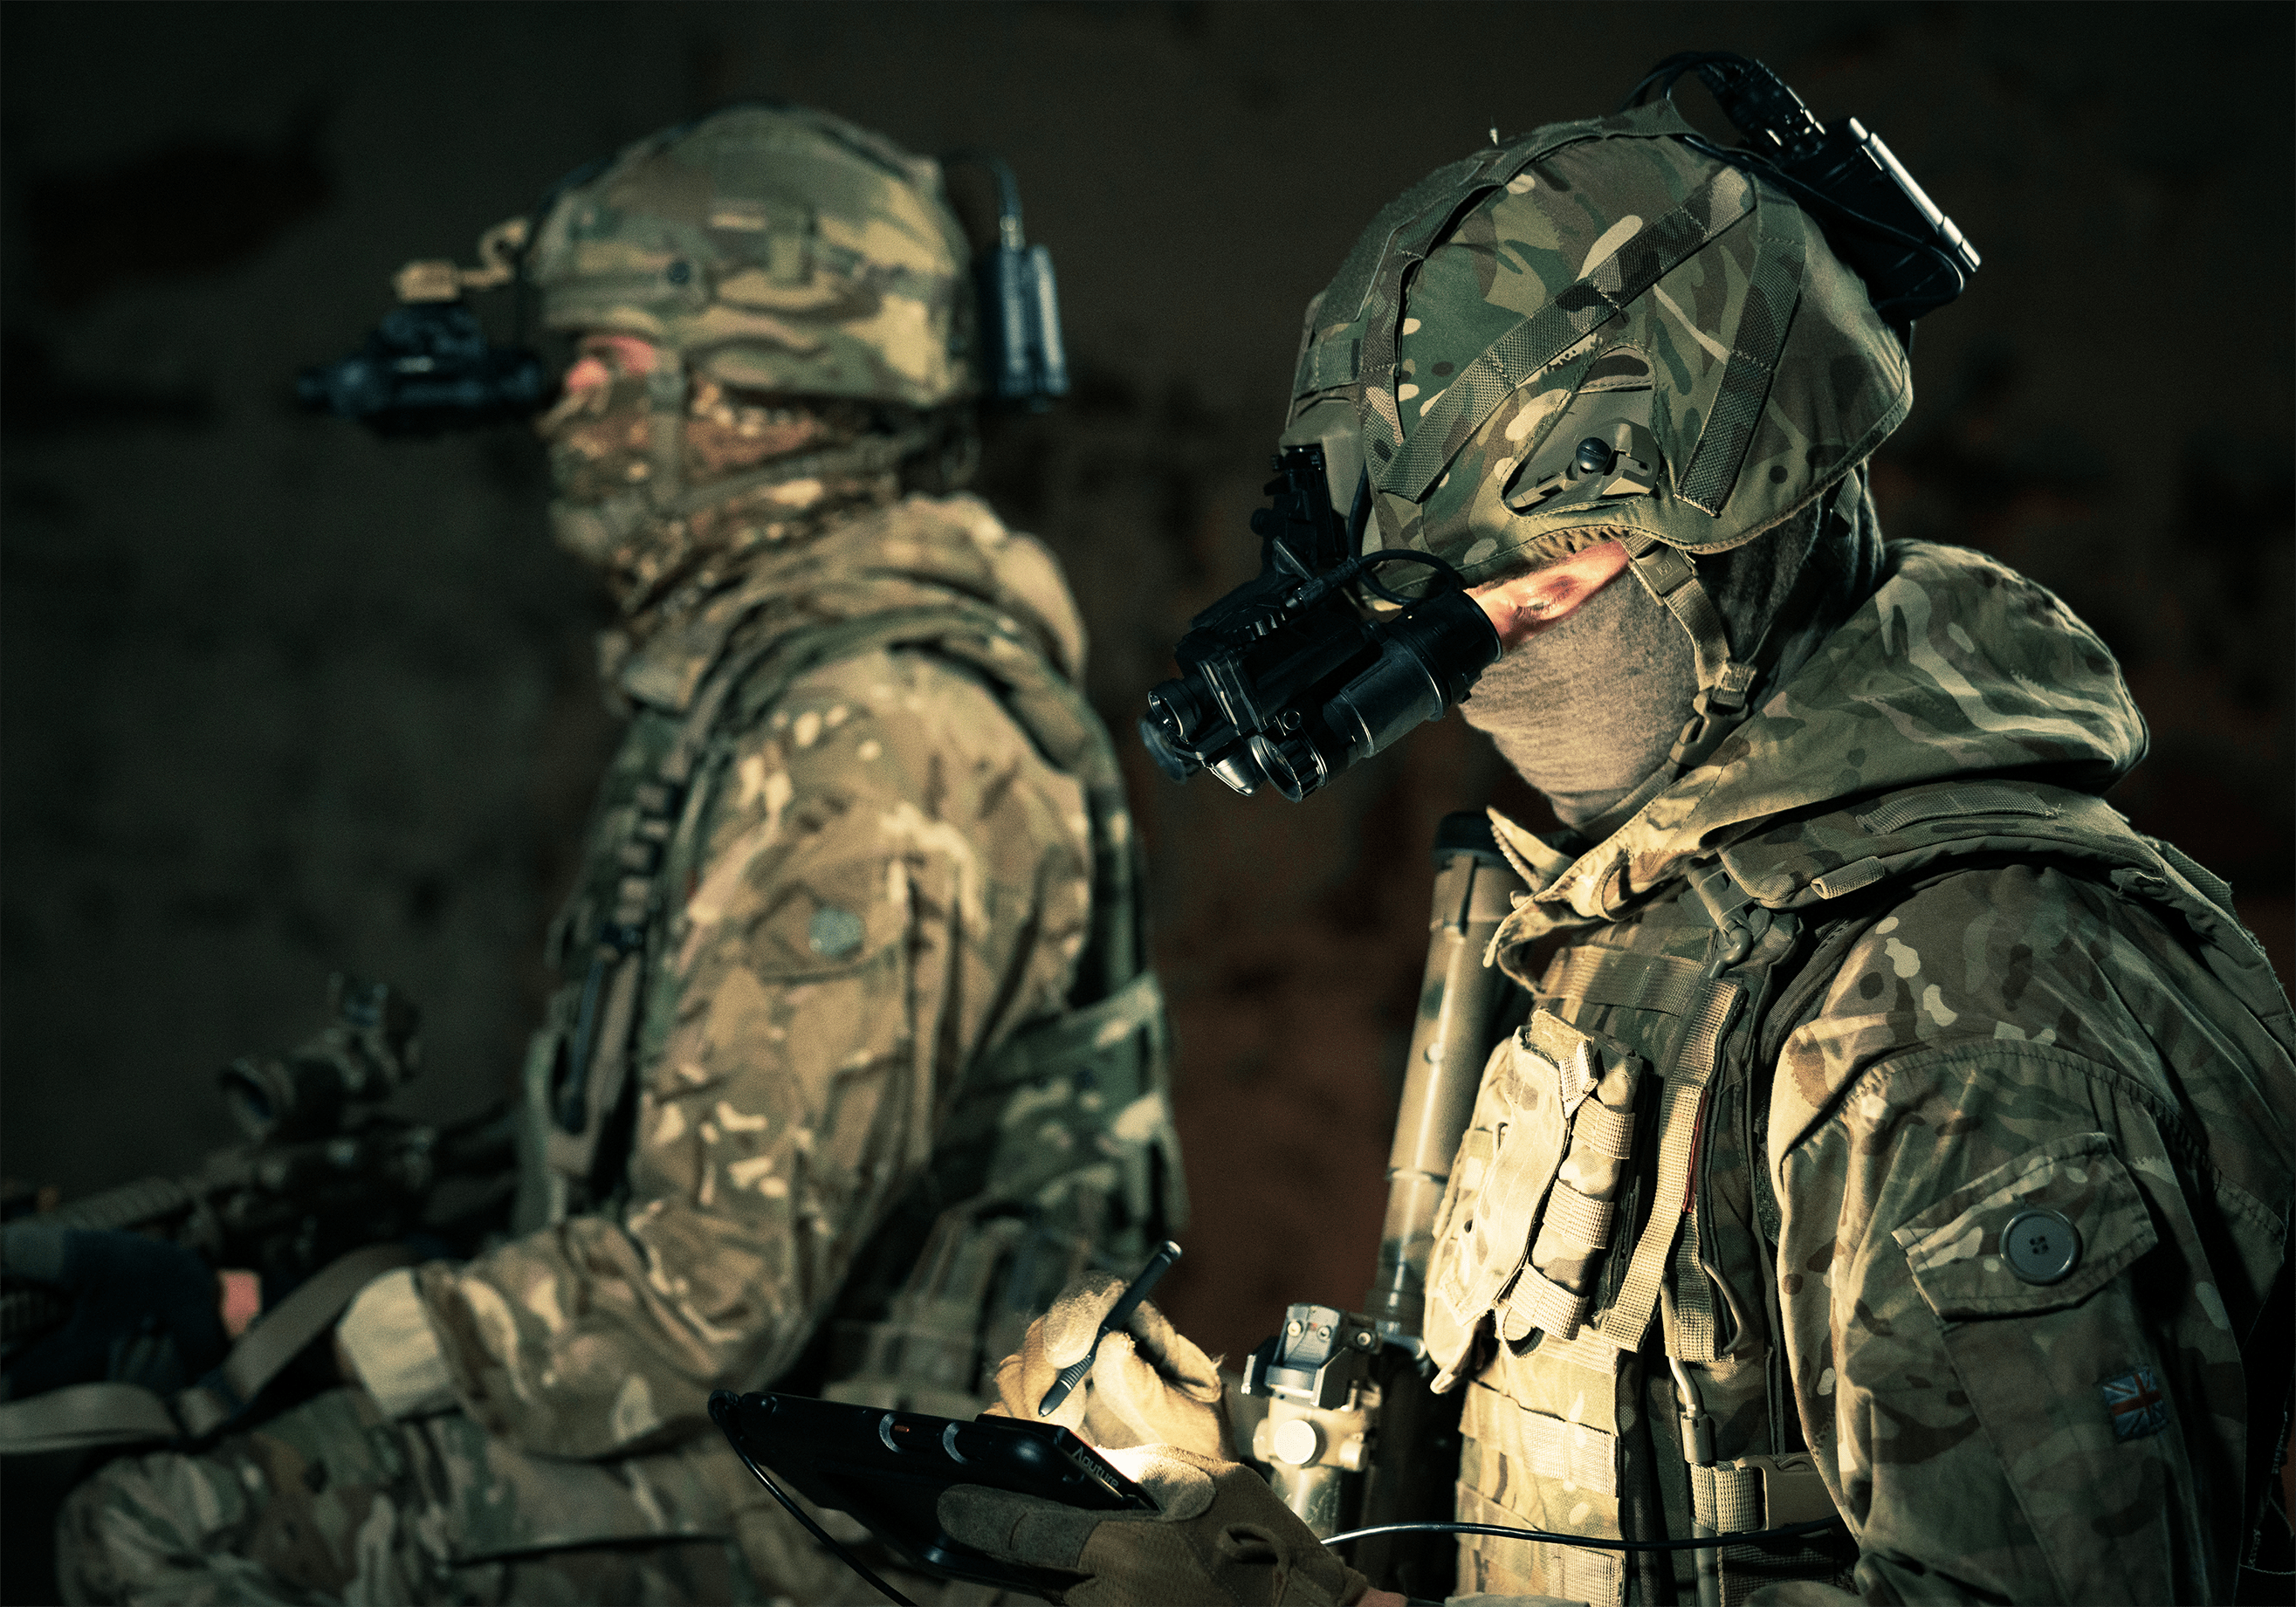 Thermoteknix Launches New Augmented Reality Tactical Interface Module (ARTIM) with ATAK Capabilities